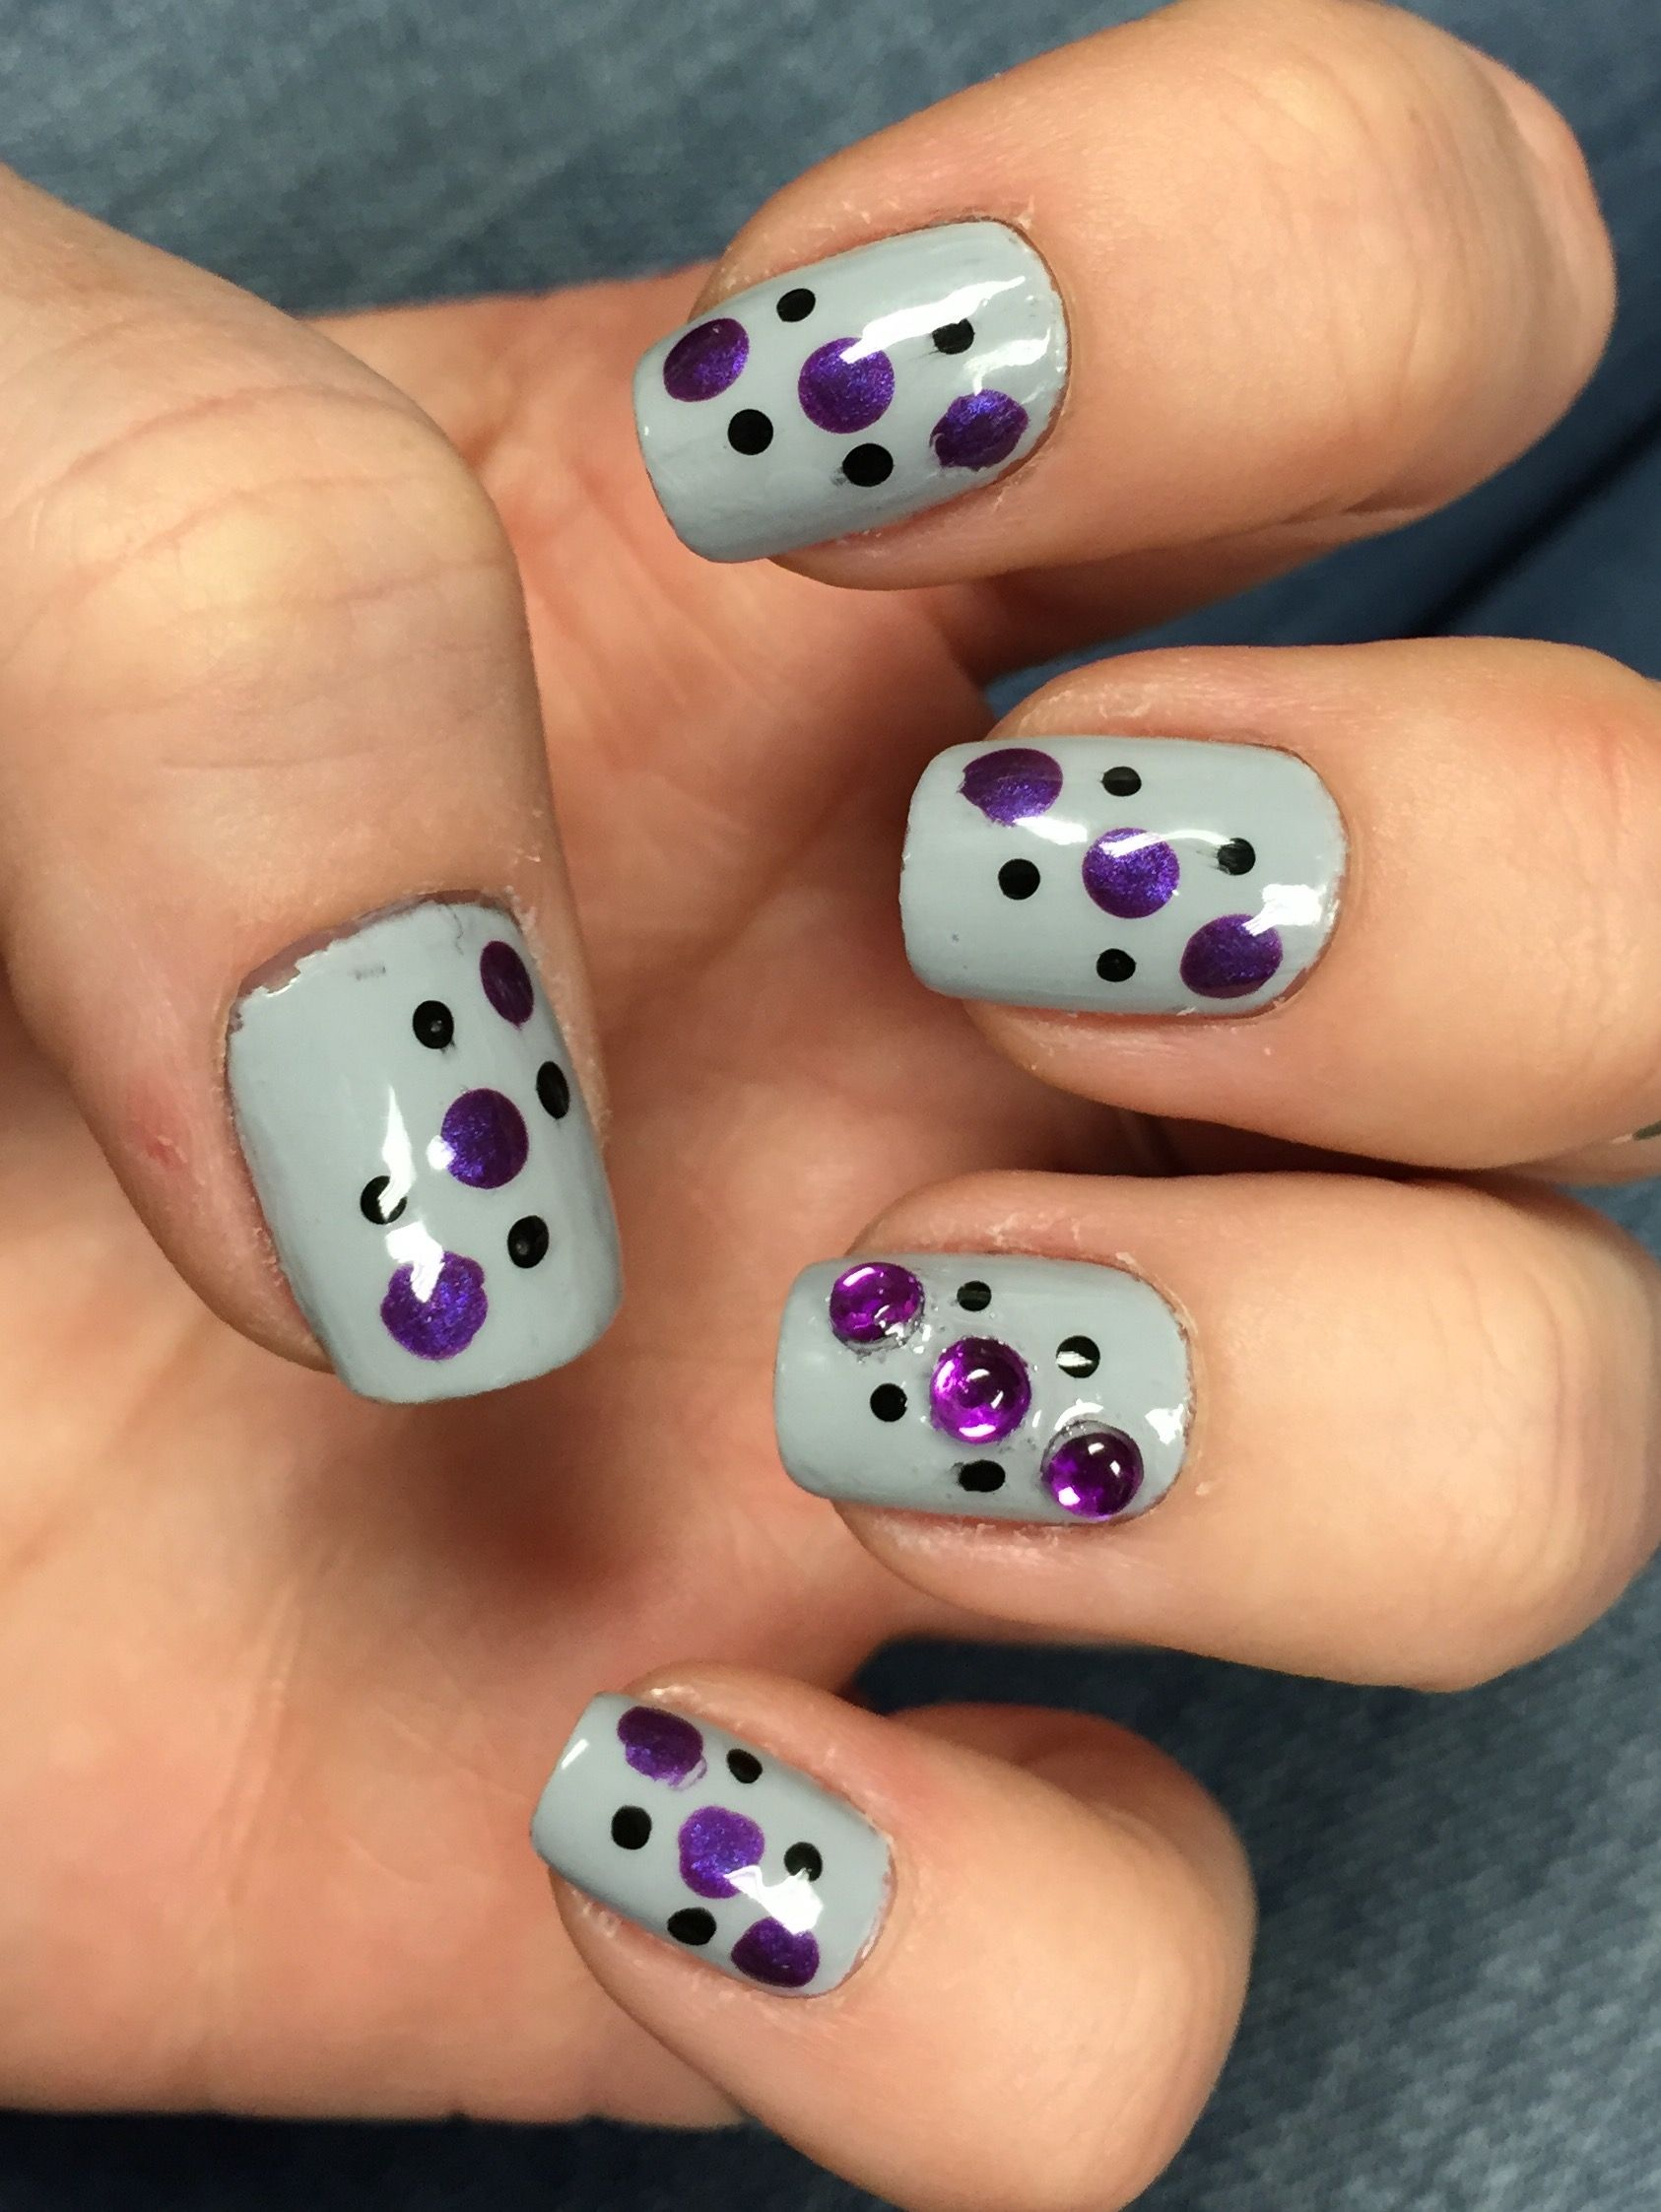 grey purple black dots | Nail Art | Pinterest | Black dots, Nail ...